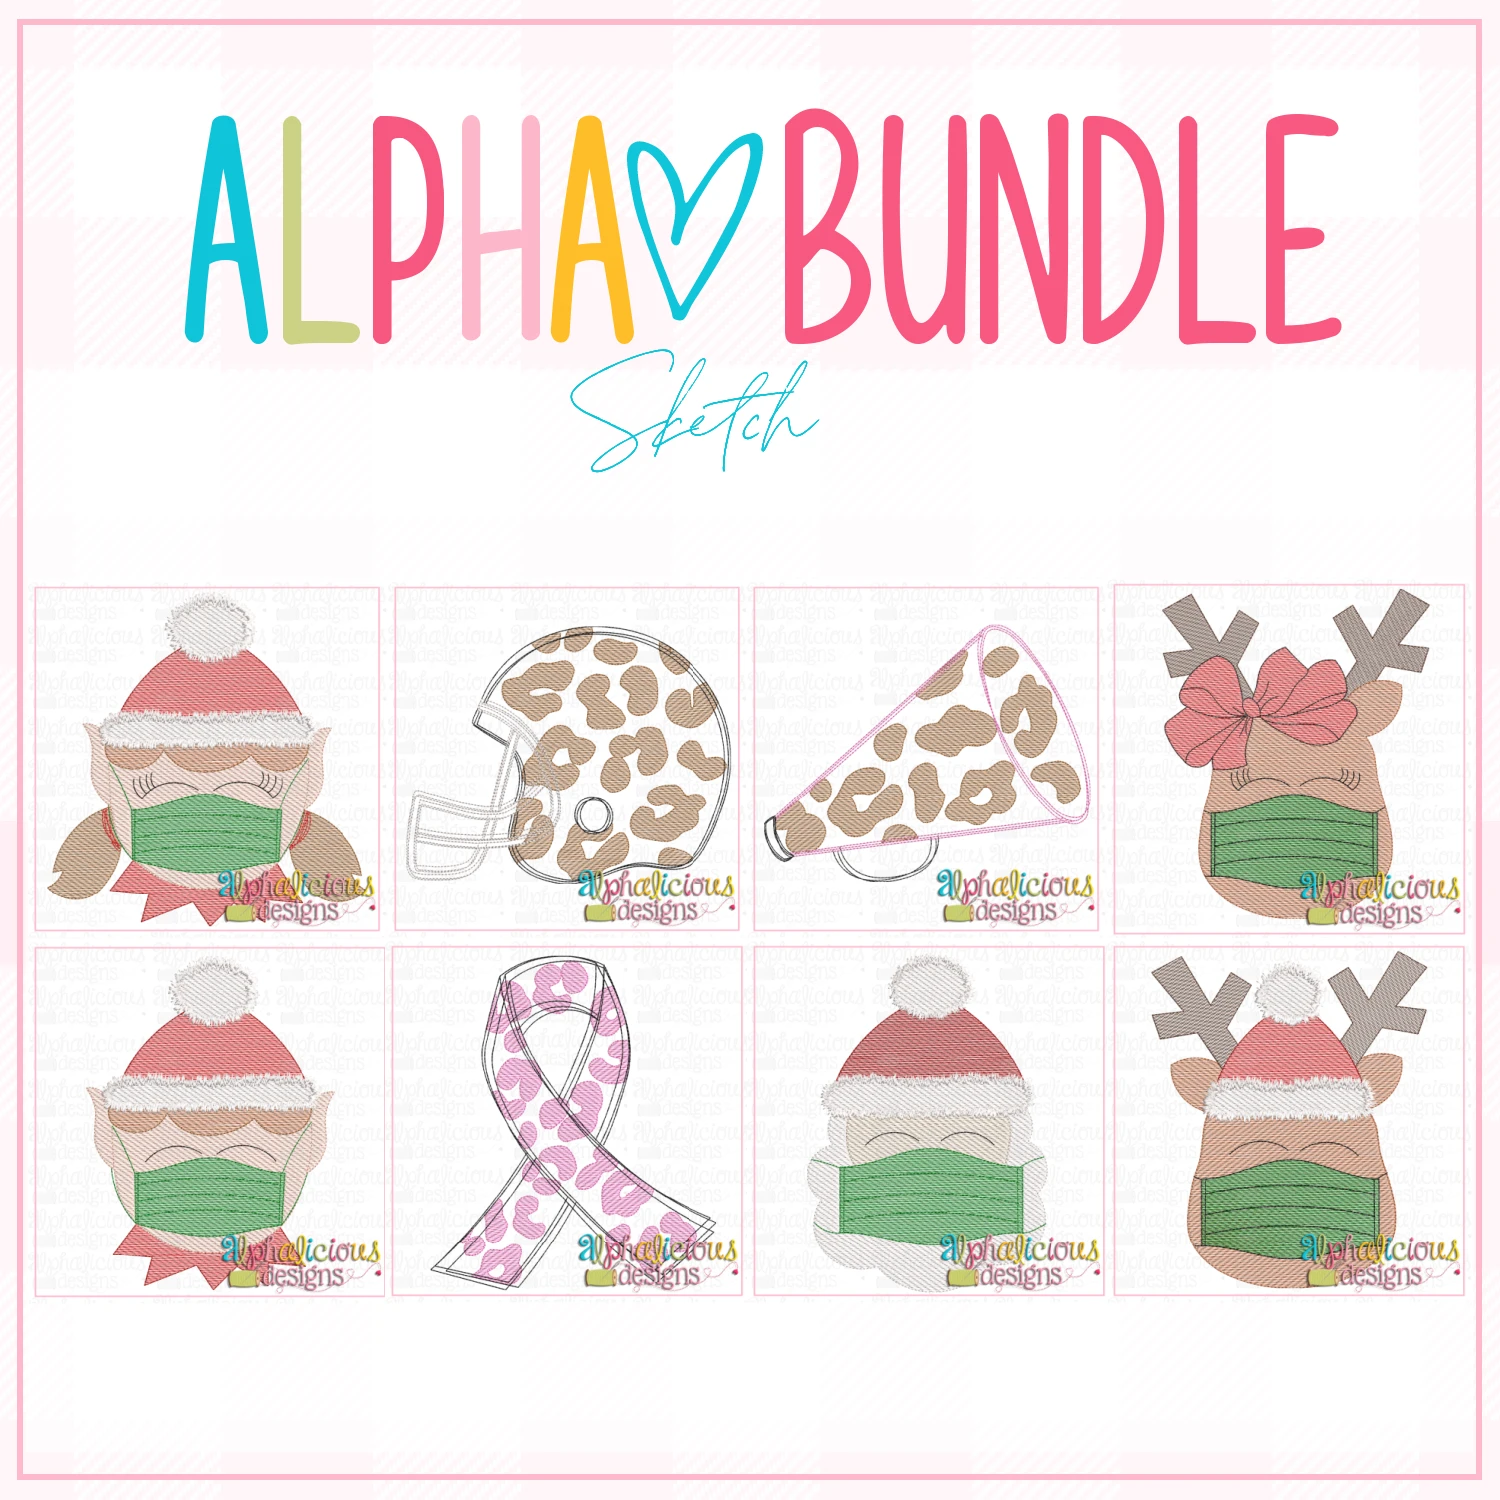 ALPHA BUNDLE-10-16-20 Release-Sketch